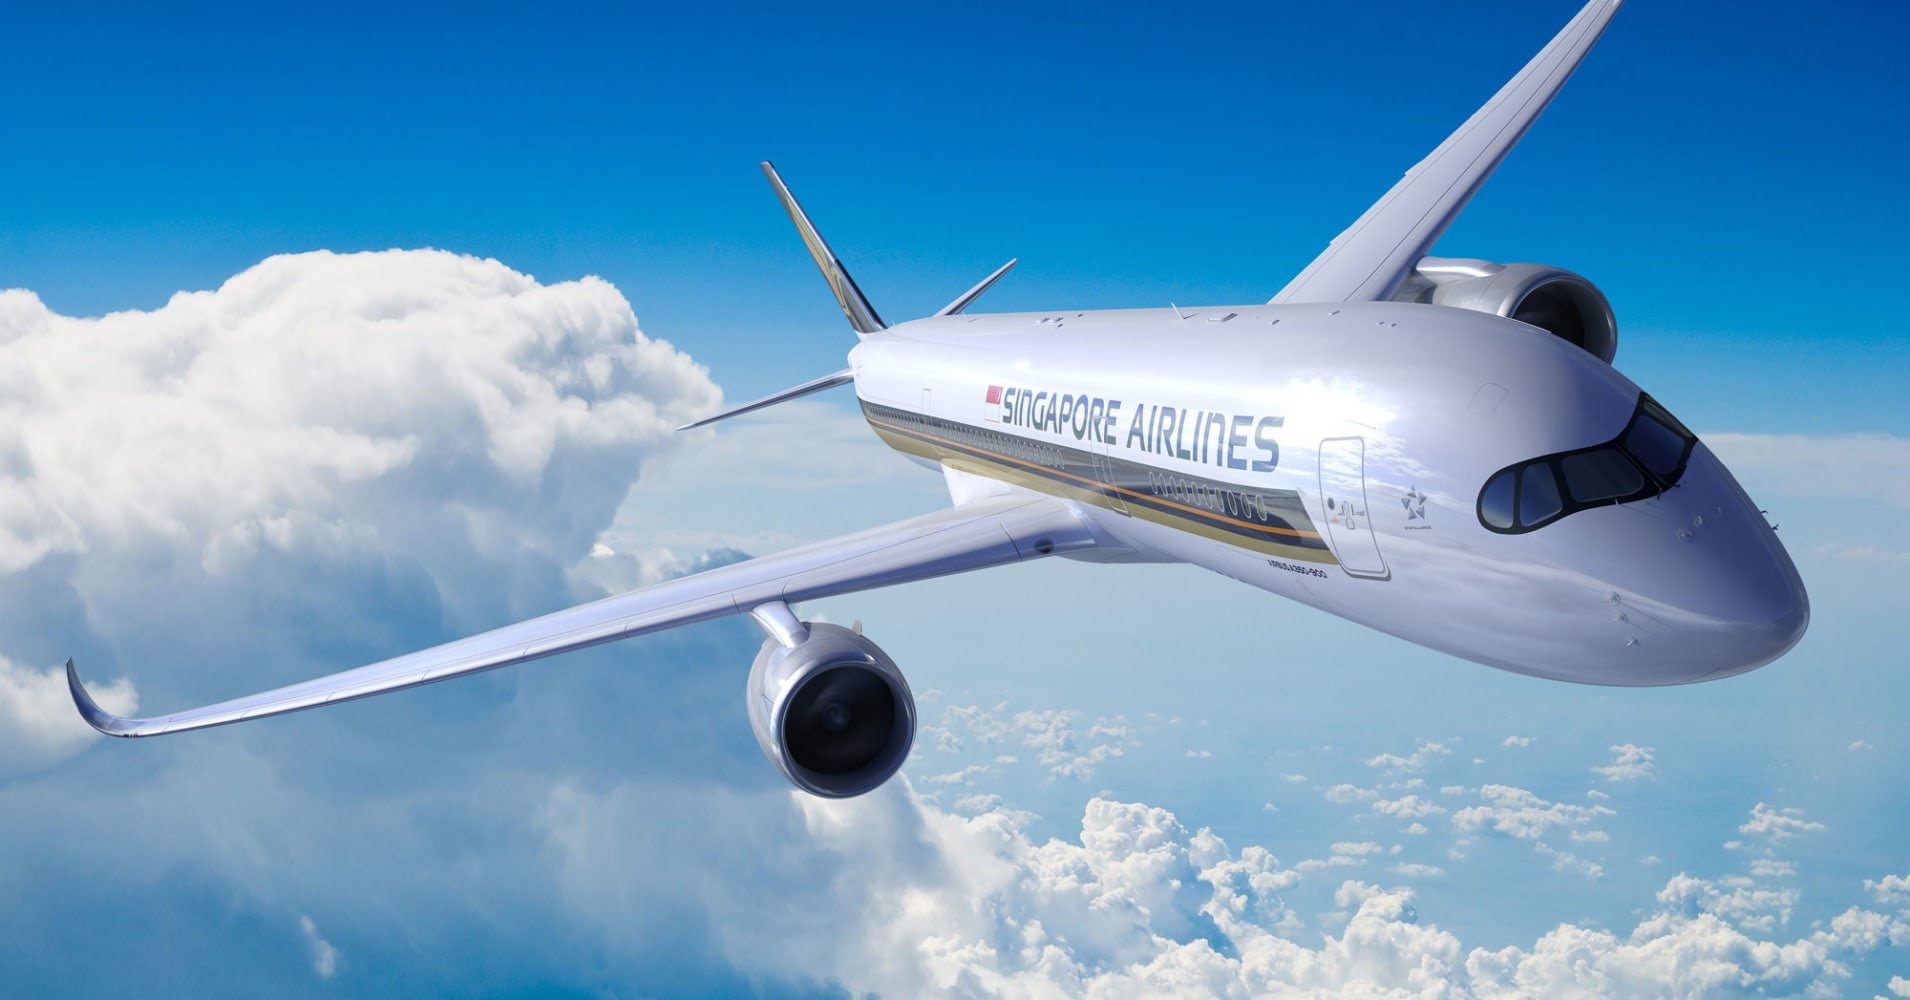 The Airbus A350 URL has two engines instead of four, helping carriers save on fuel costs.